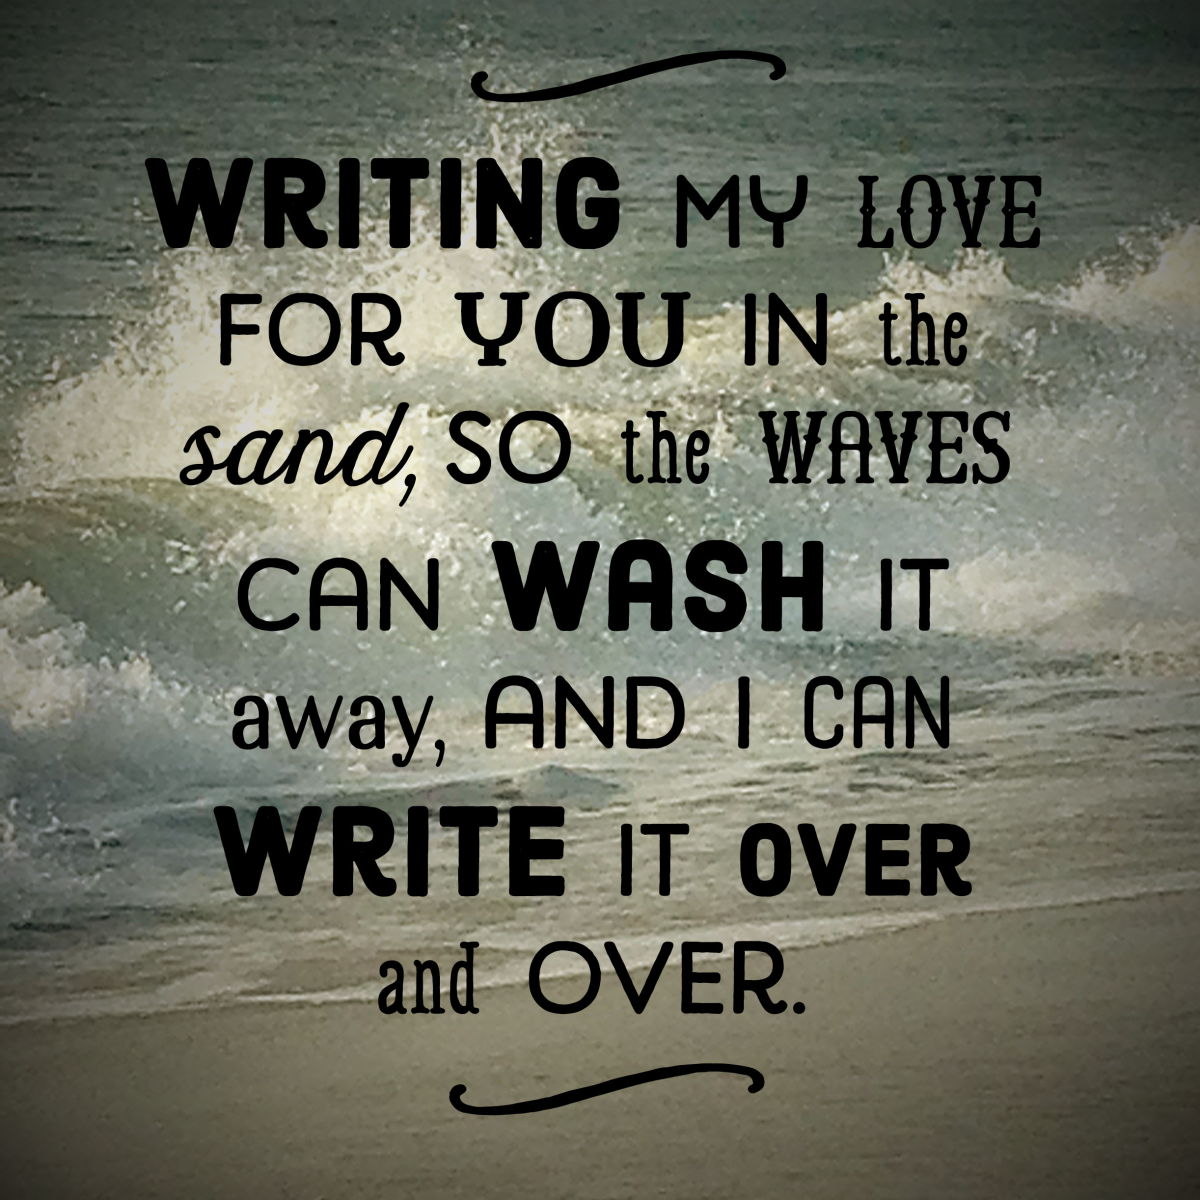 short love message perfect for sms writing my love for you in the sand